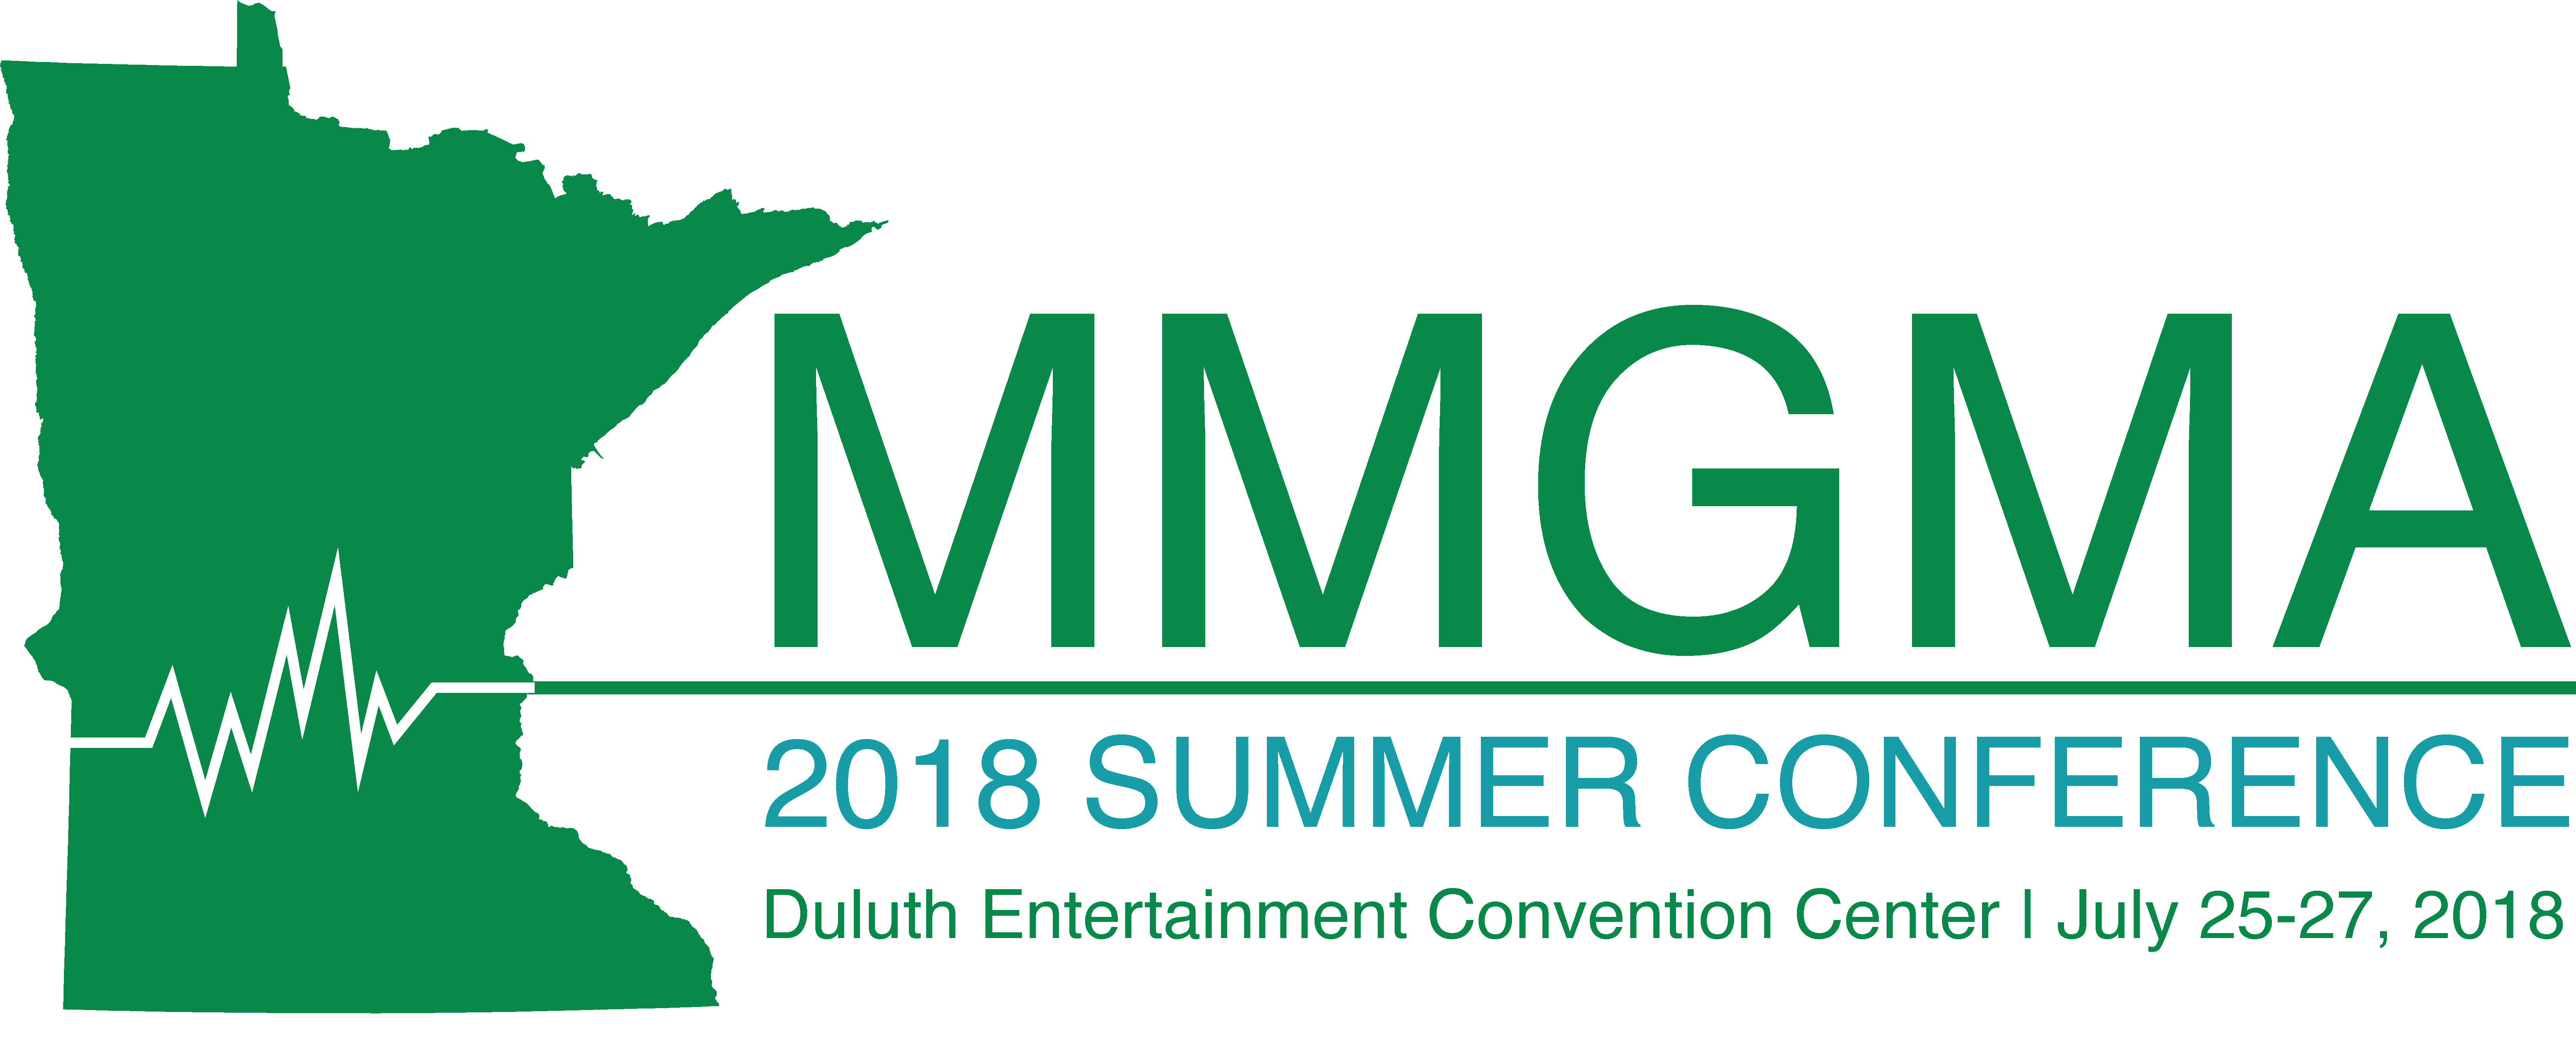 MMGMA 2018 Summer Conference logo